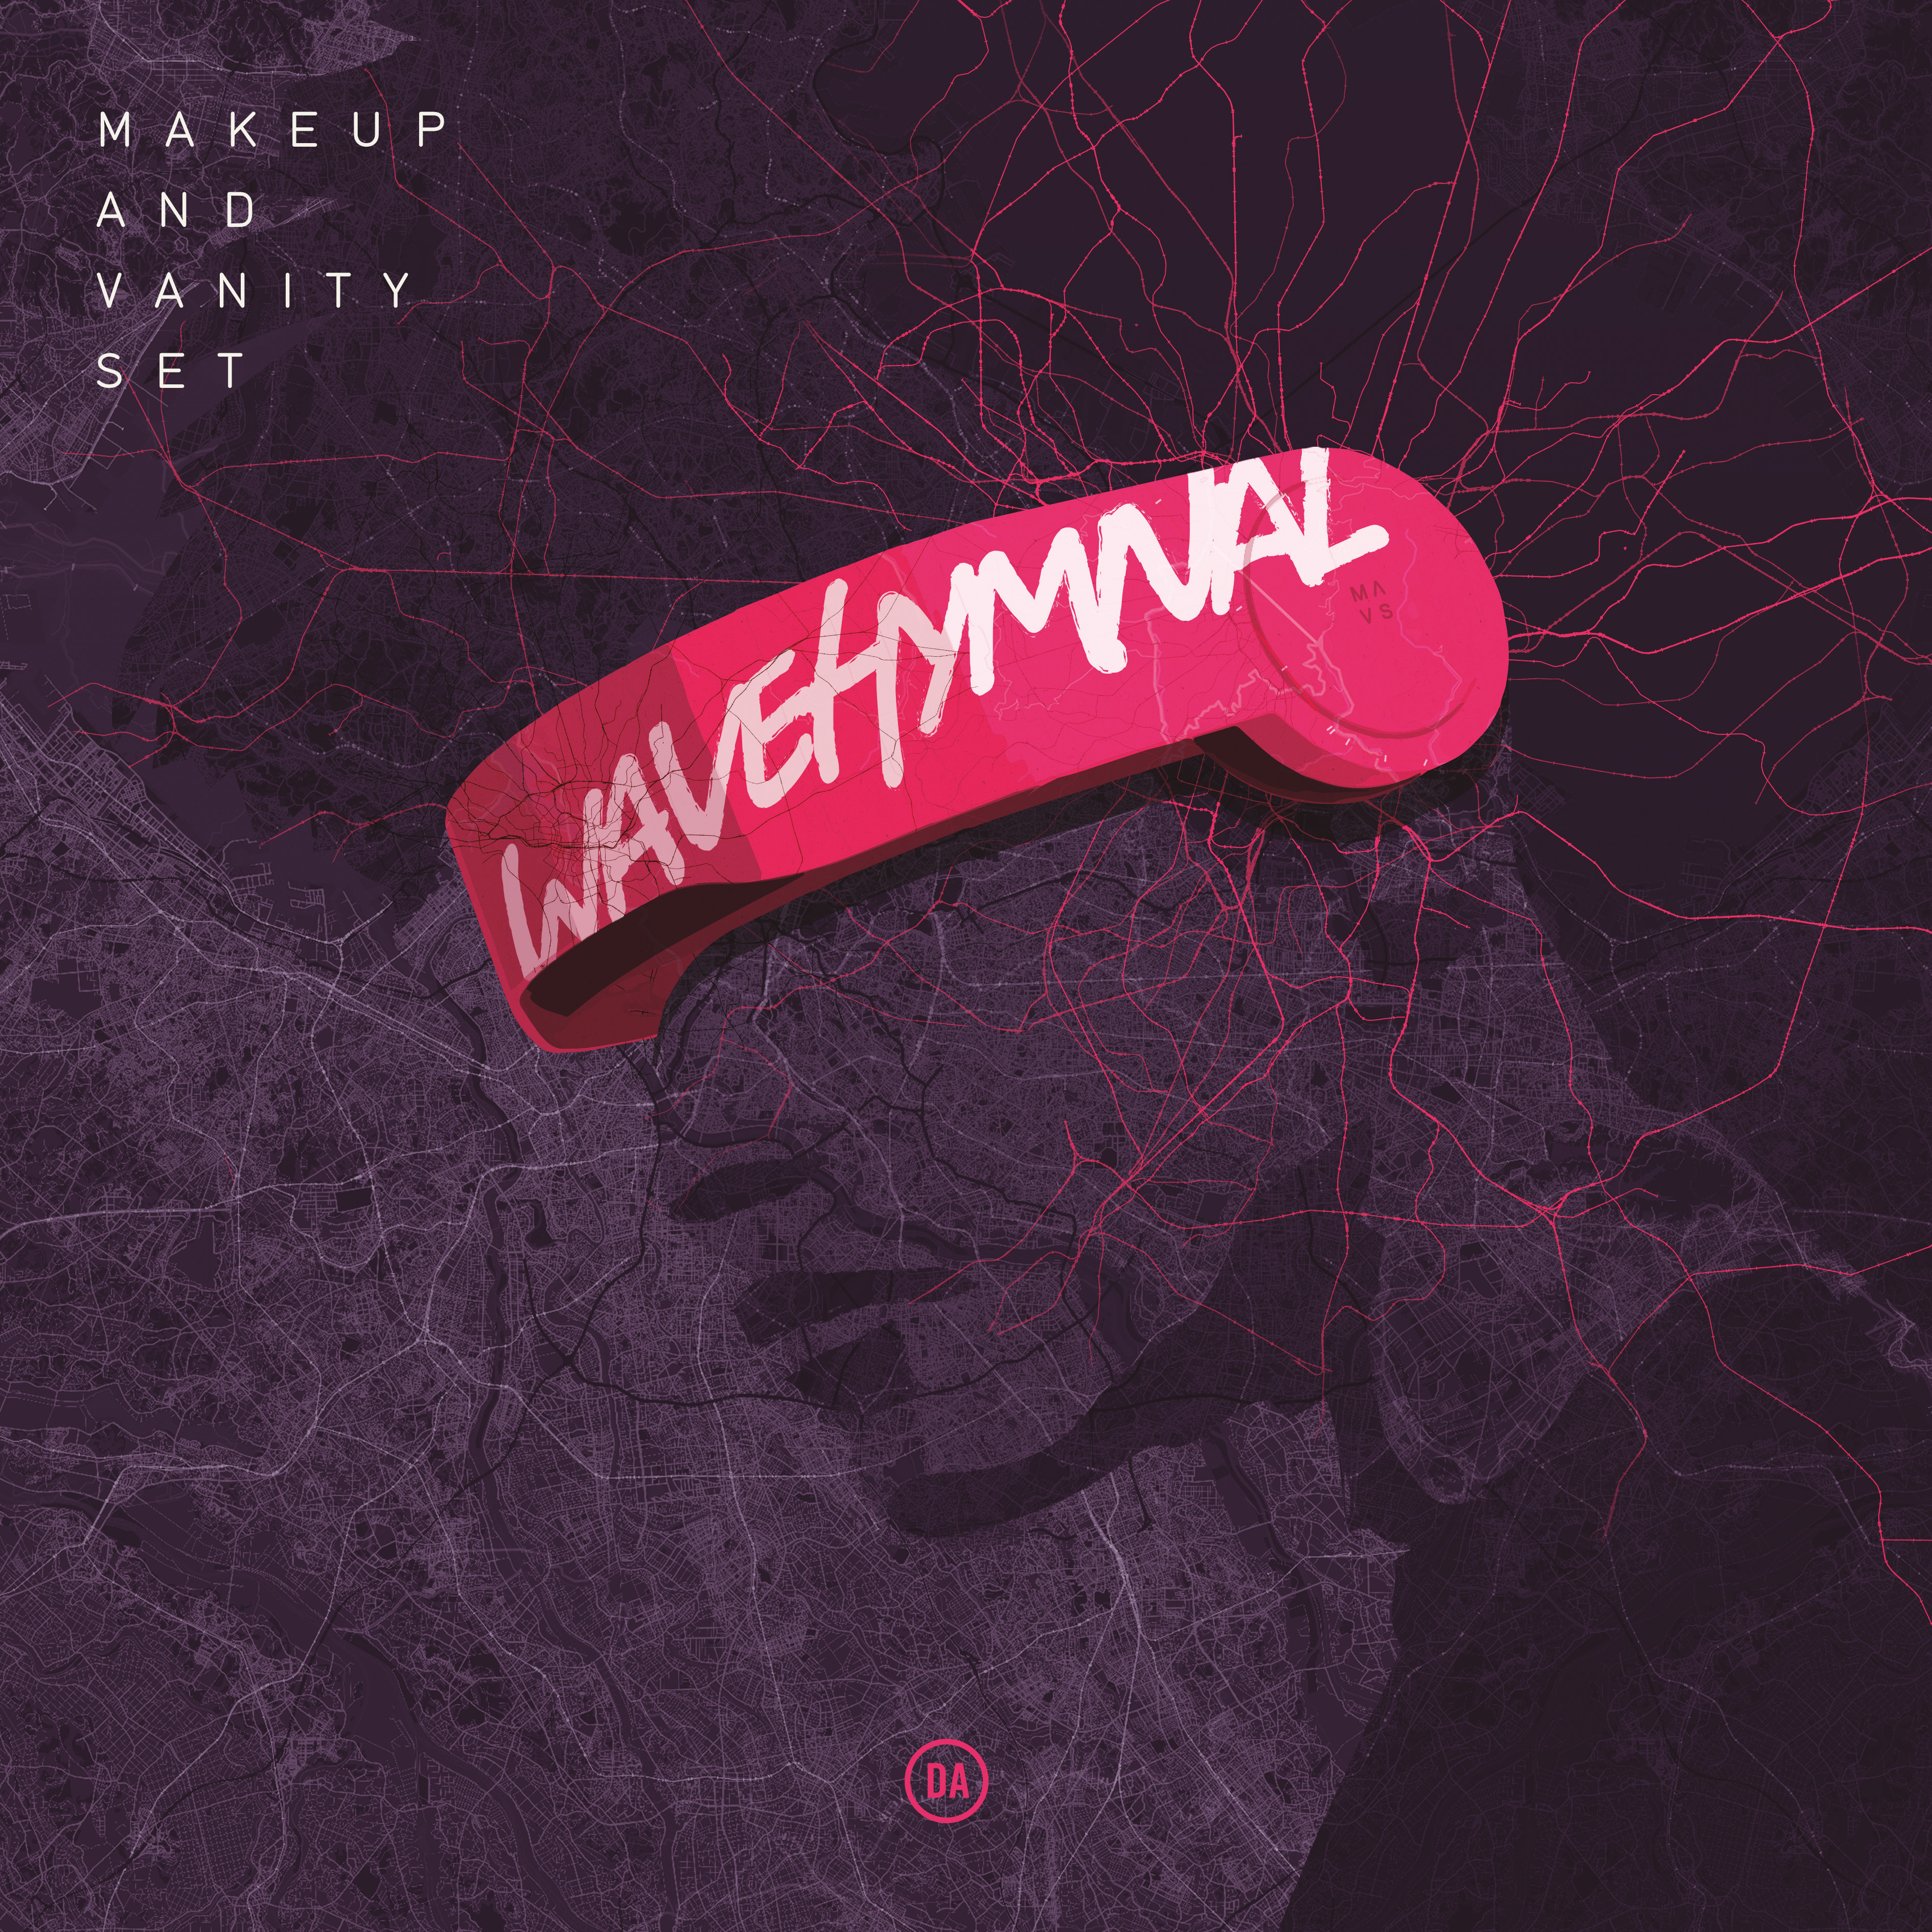 Makeup And Vanity Set – Wavehymnal (DATA044)